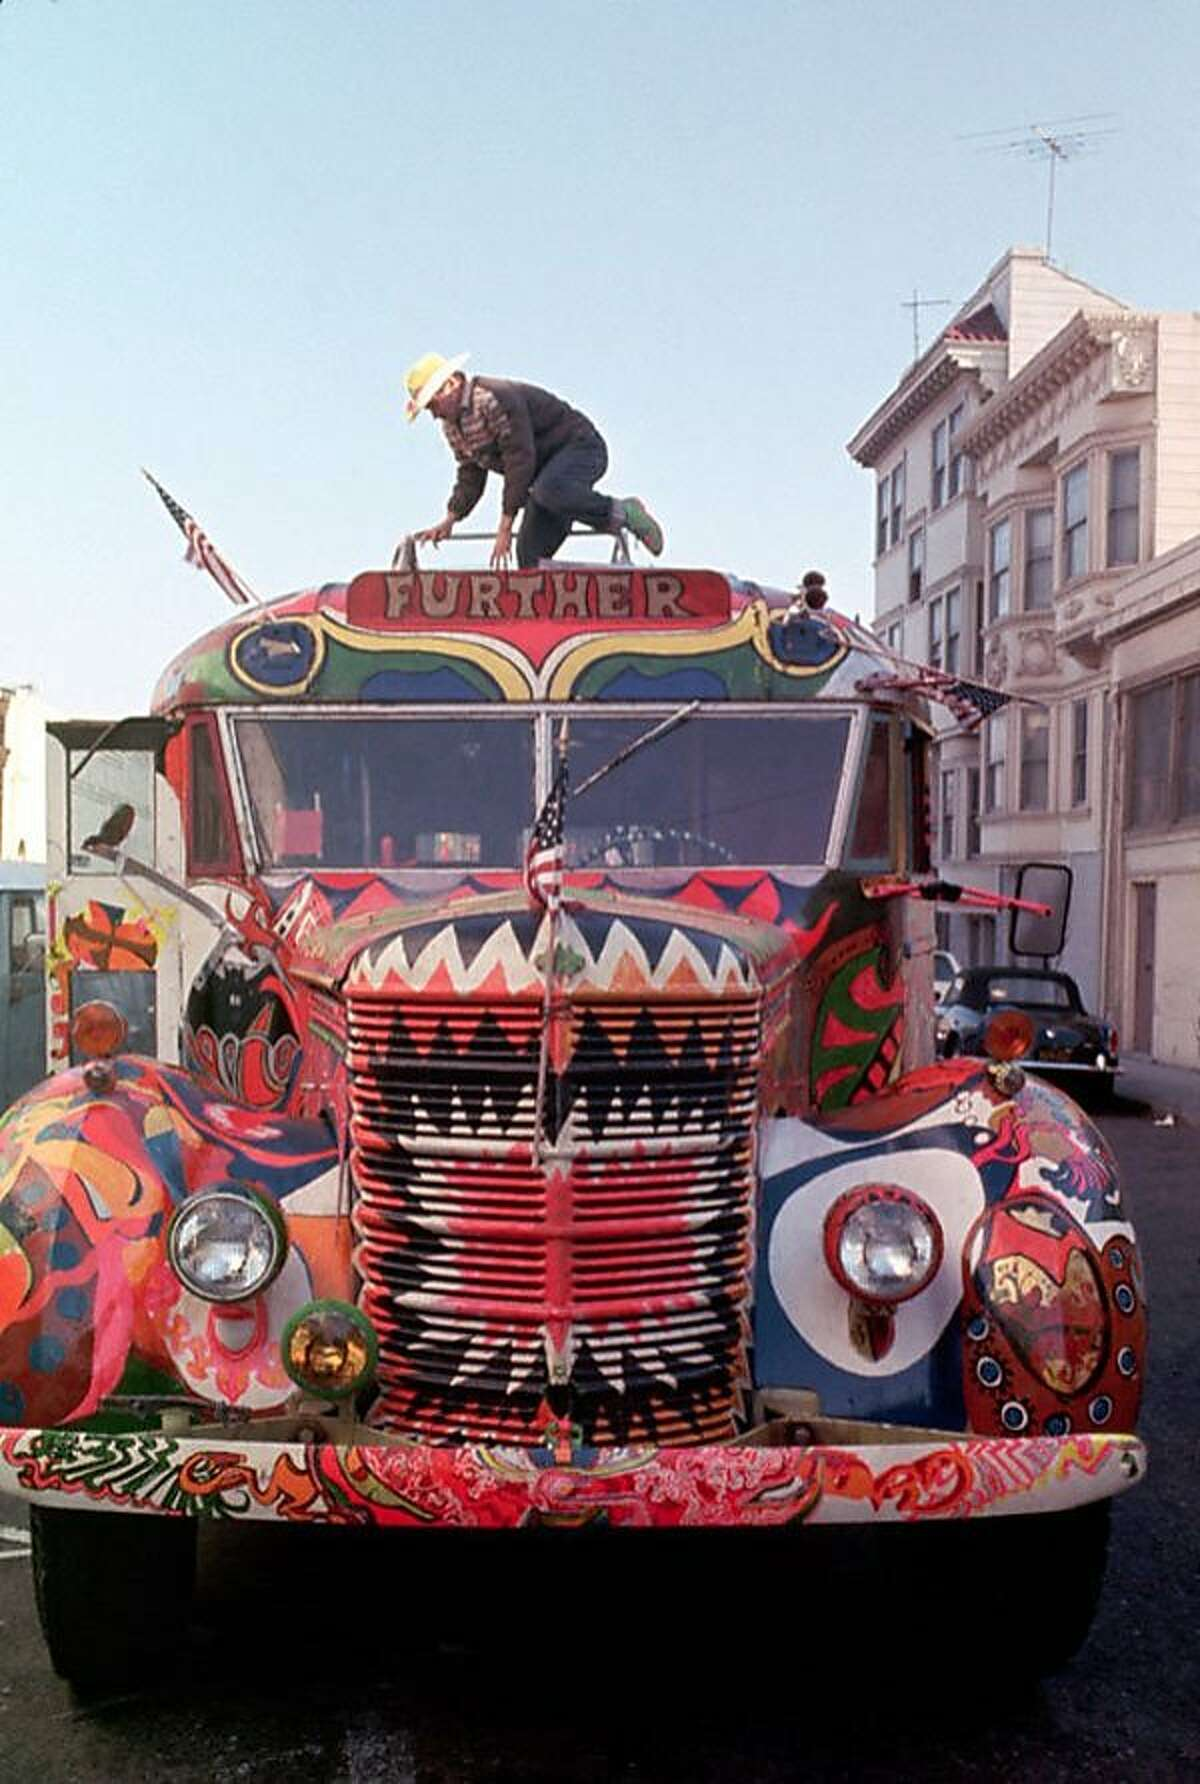 The bus used by Ken Kesey and the Merry Pranksters in 1964, as seen in the documentary